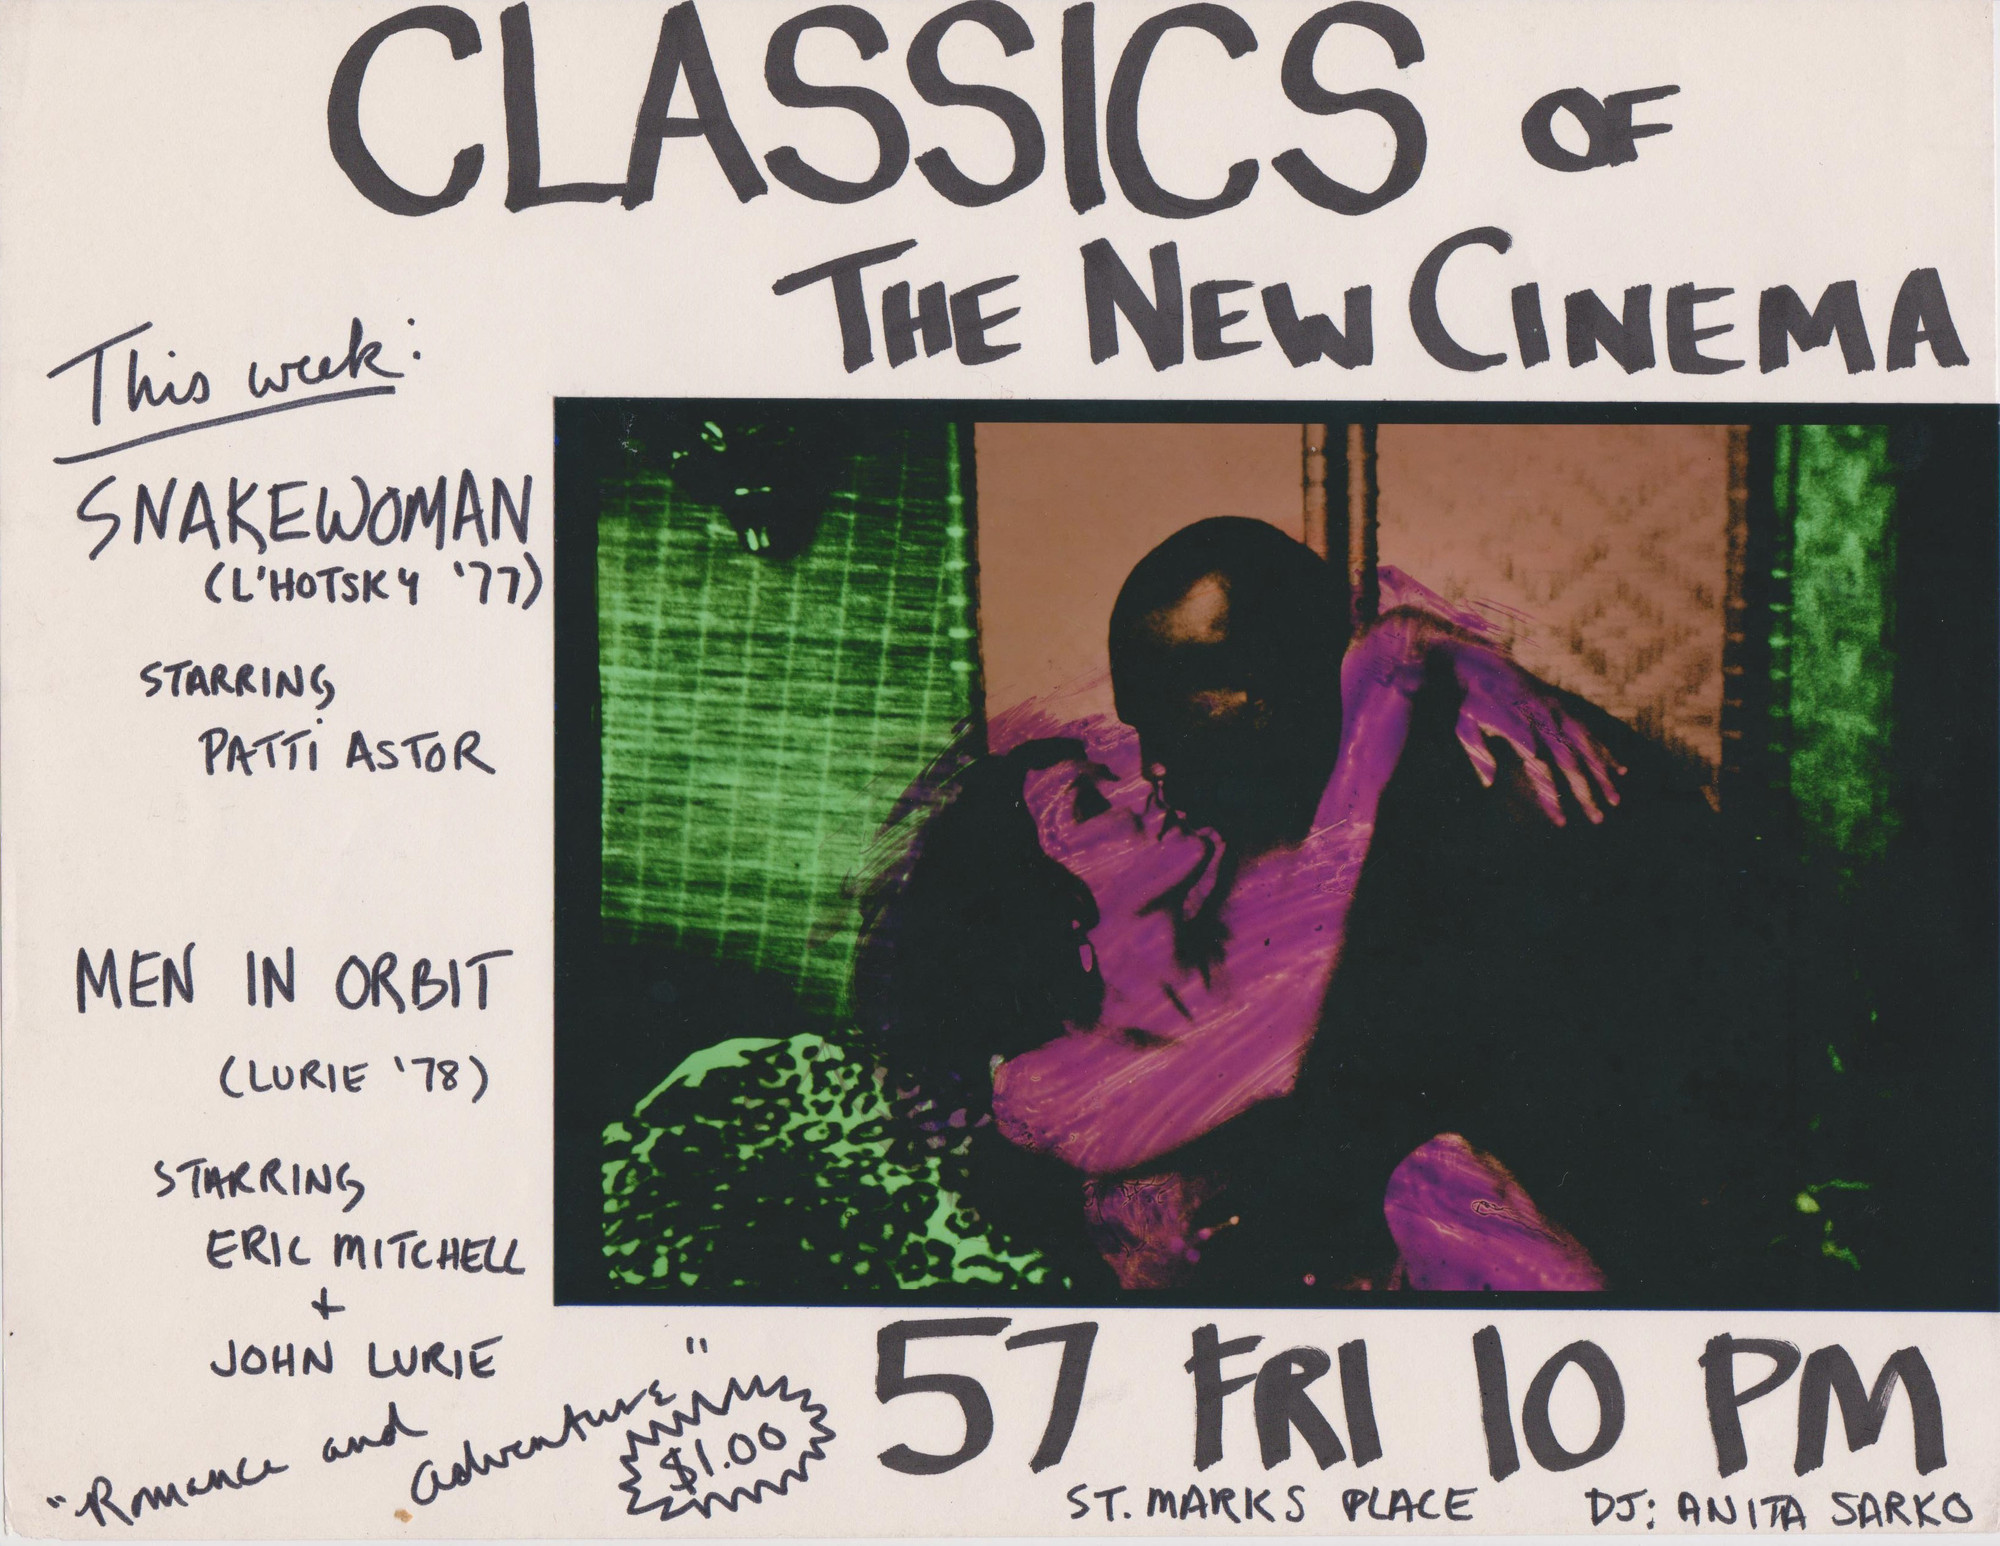 Patti Astor. Flyer for Snake Woman and Men in Orbit screening at Club 57, 1981. 1981